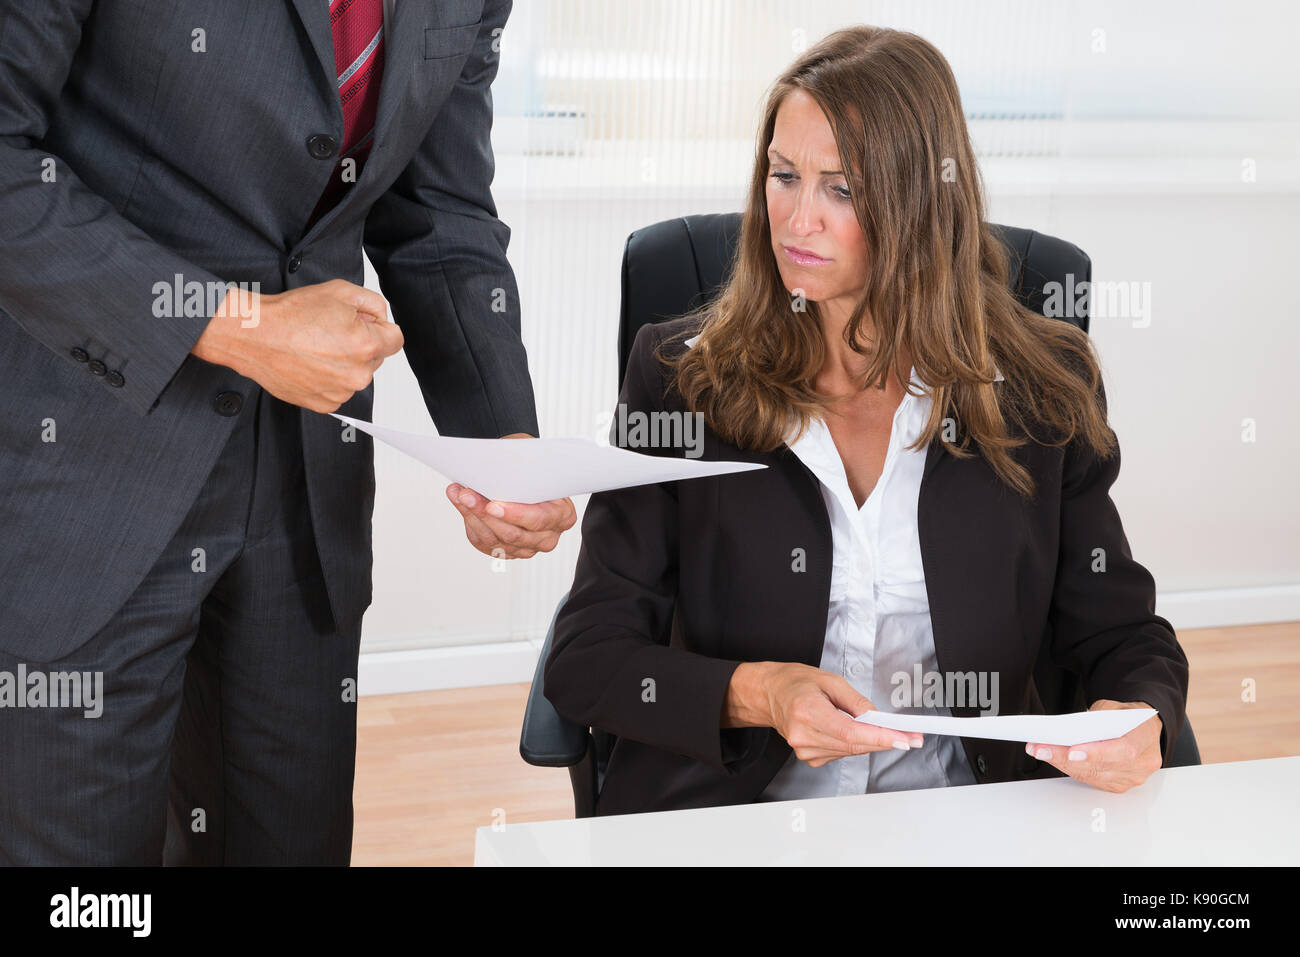 Close-up Of Businessman Showing Document To Female Employee In Office - Stock Image